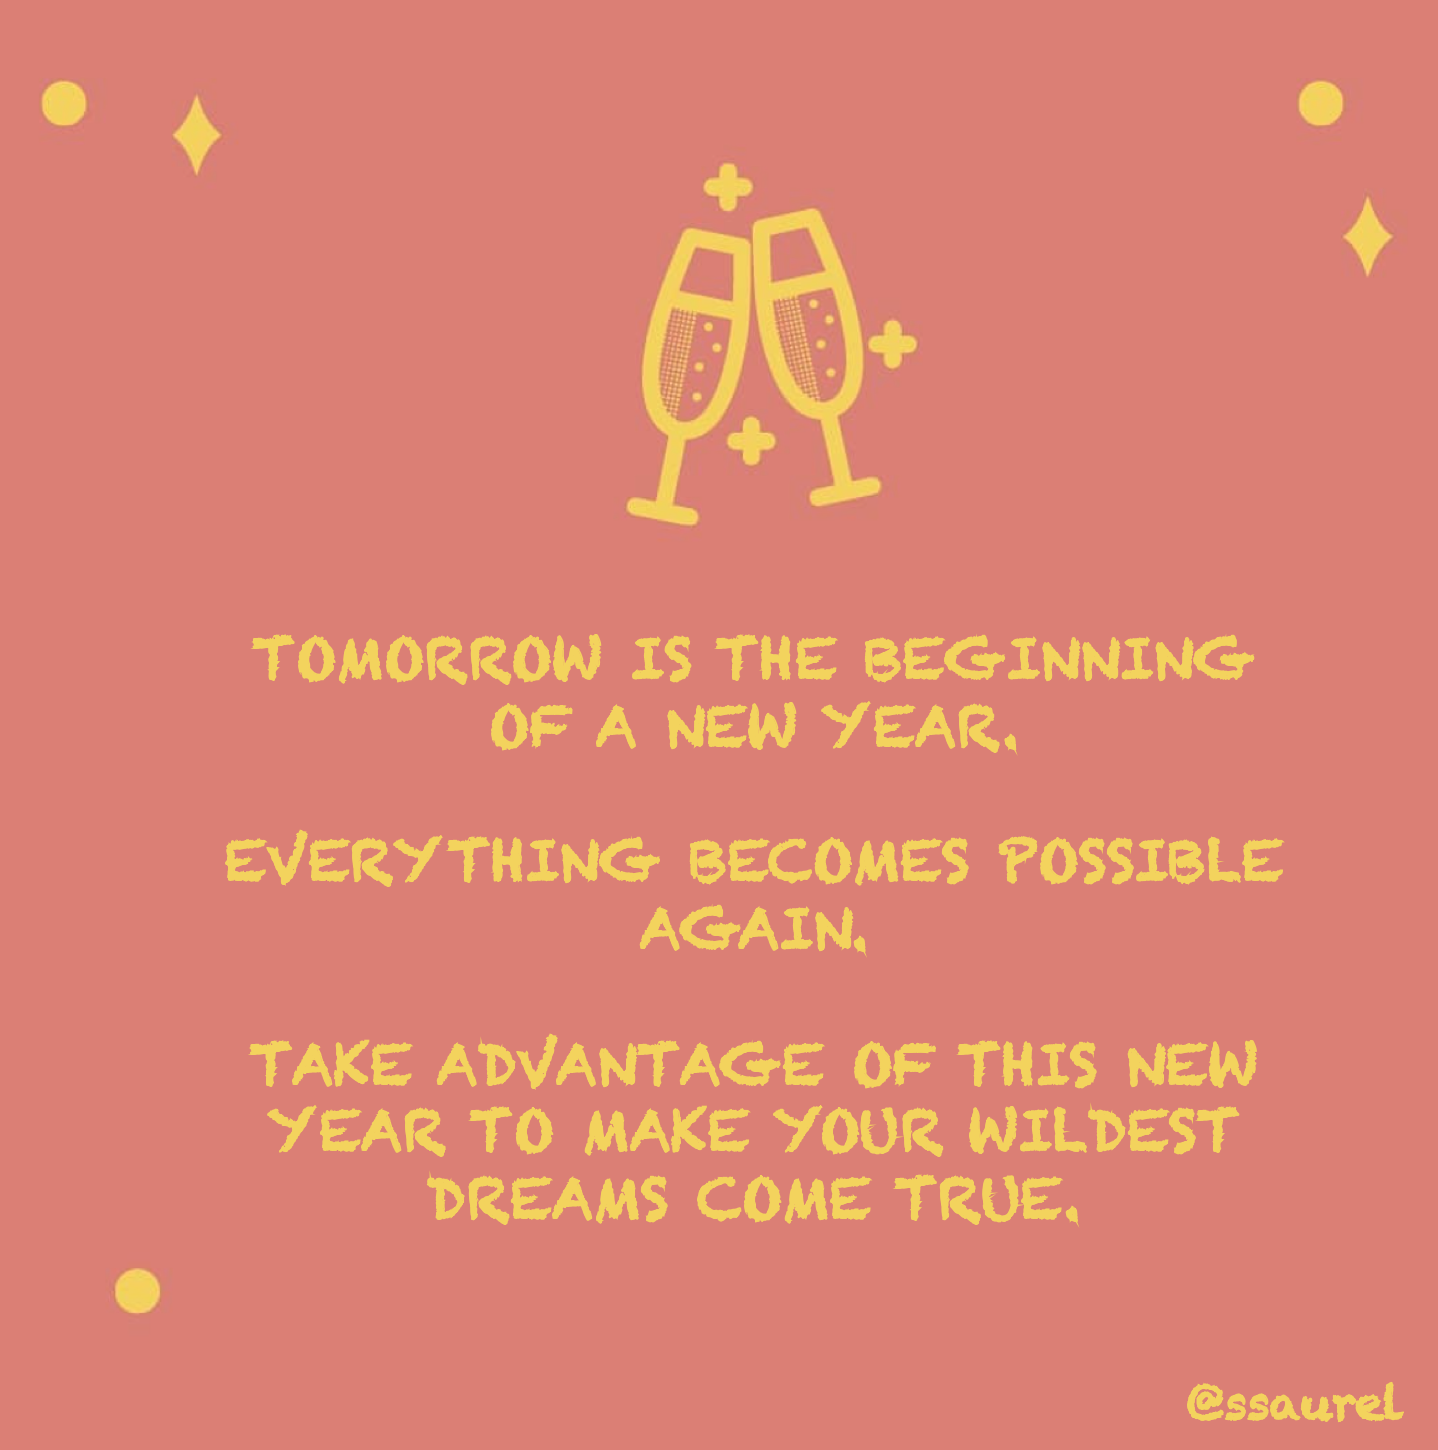 [Image] Tomorrow is the beginning of a new year. Everything becomes possible again.